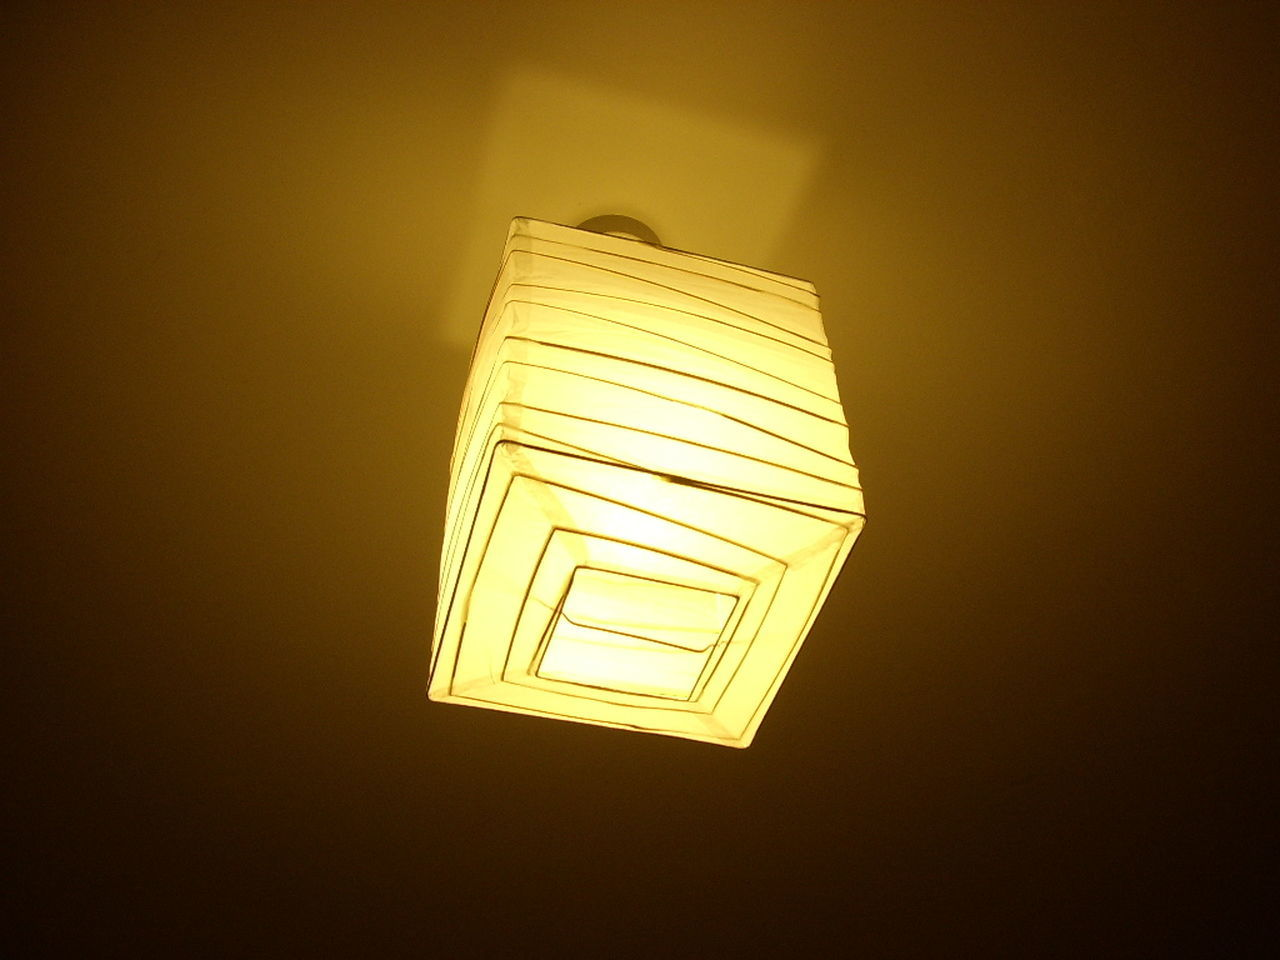 electricity, illuminated, lighting equipment, light bulb, indoors, glowing, no people, low angle view, yellow, lamp shade, close-up, home interior, night